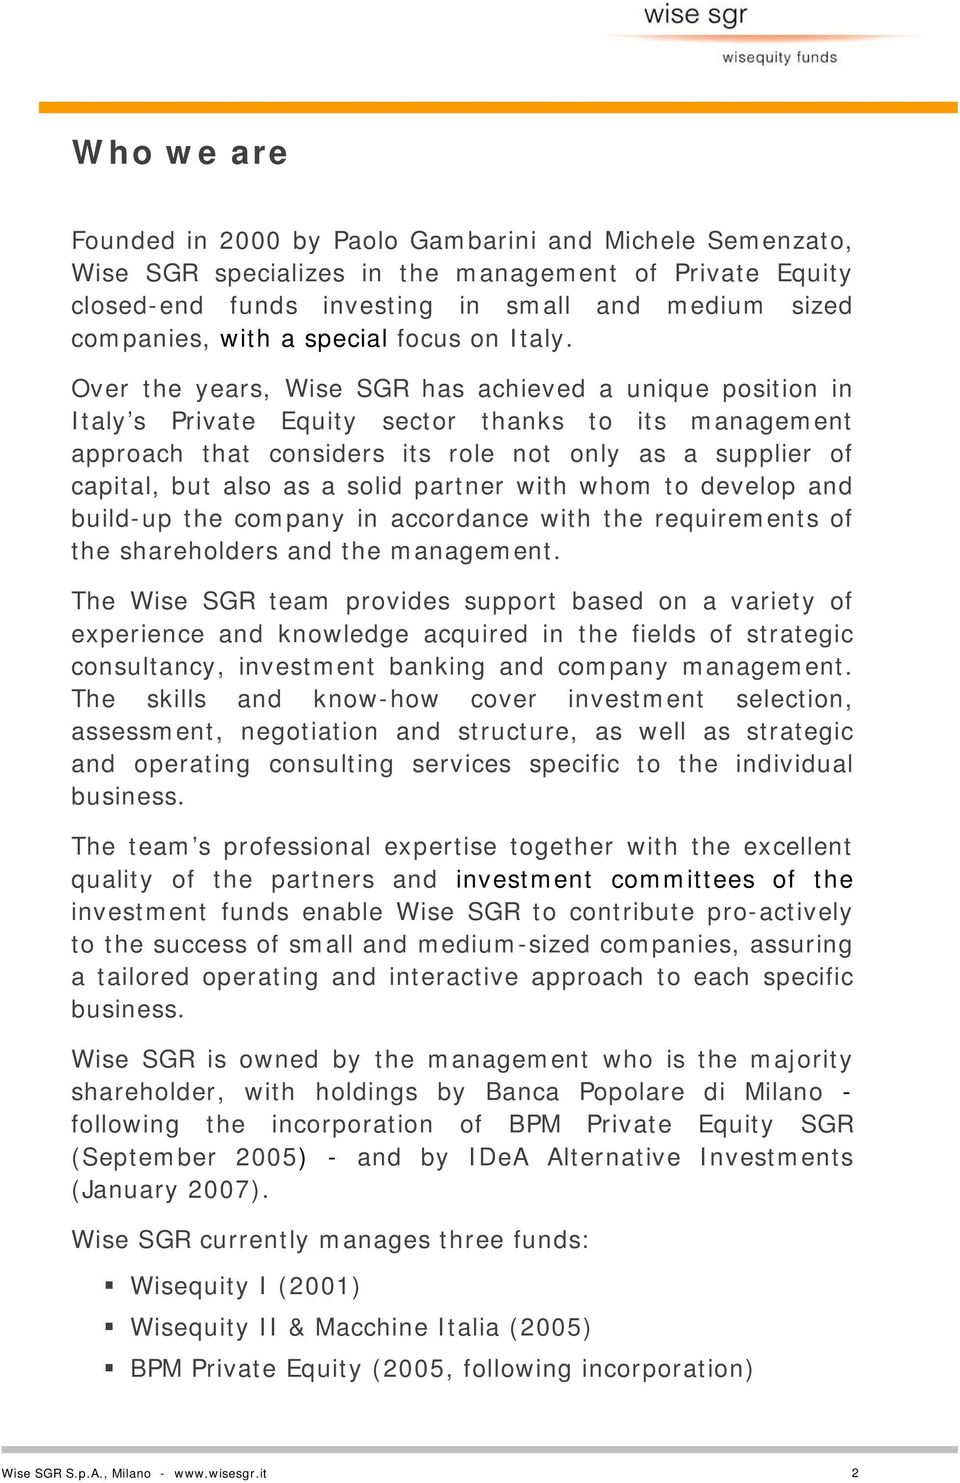 Over the years, Wise SGR has achieved a unique position in Italy s Private Equity sector thanks to its management approach that considers its role not only as a supplier of capital, but also as a